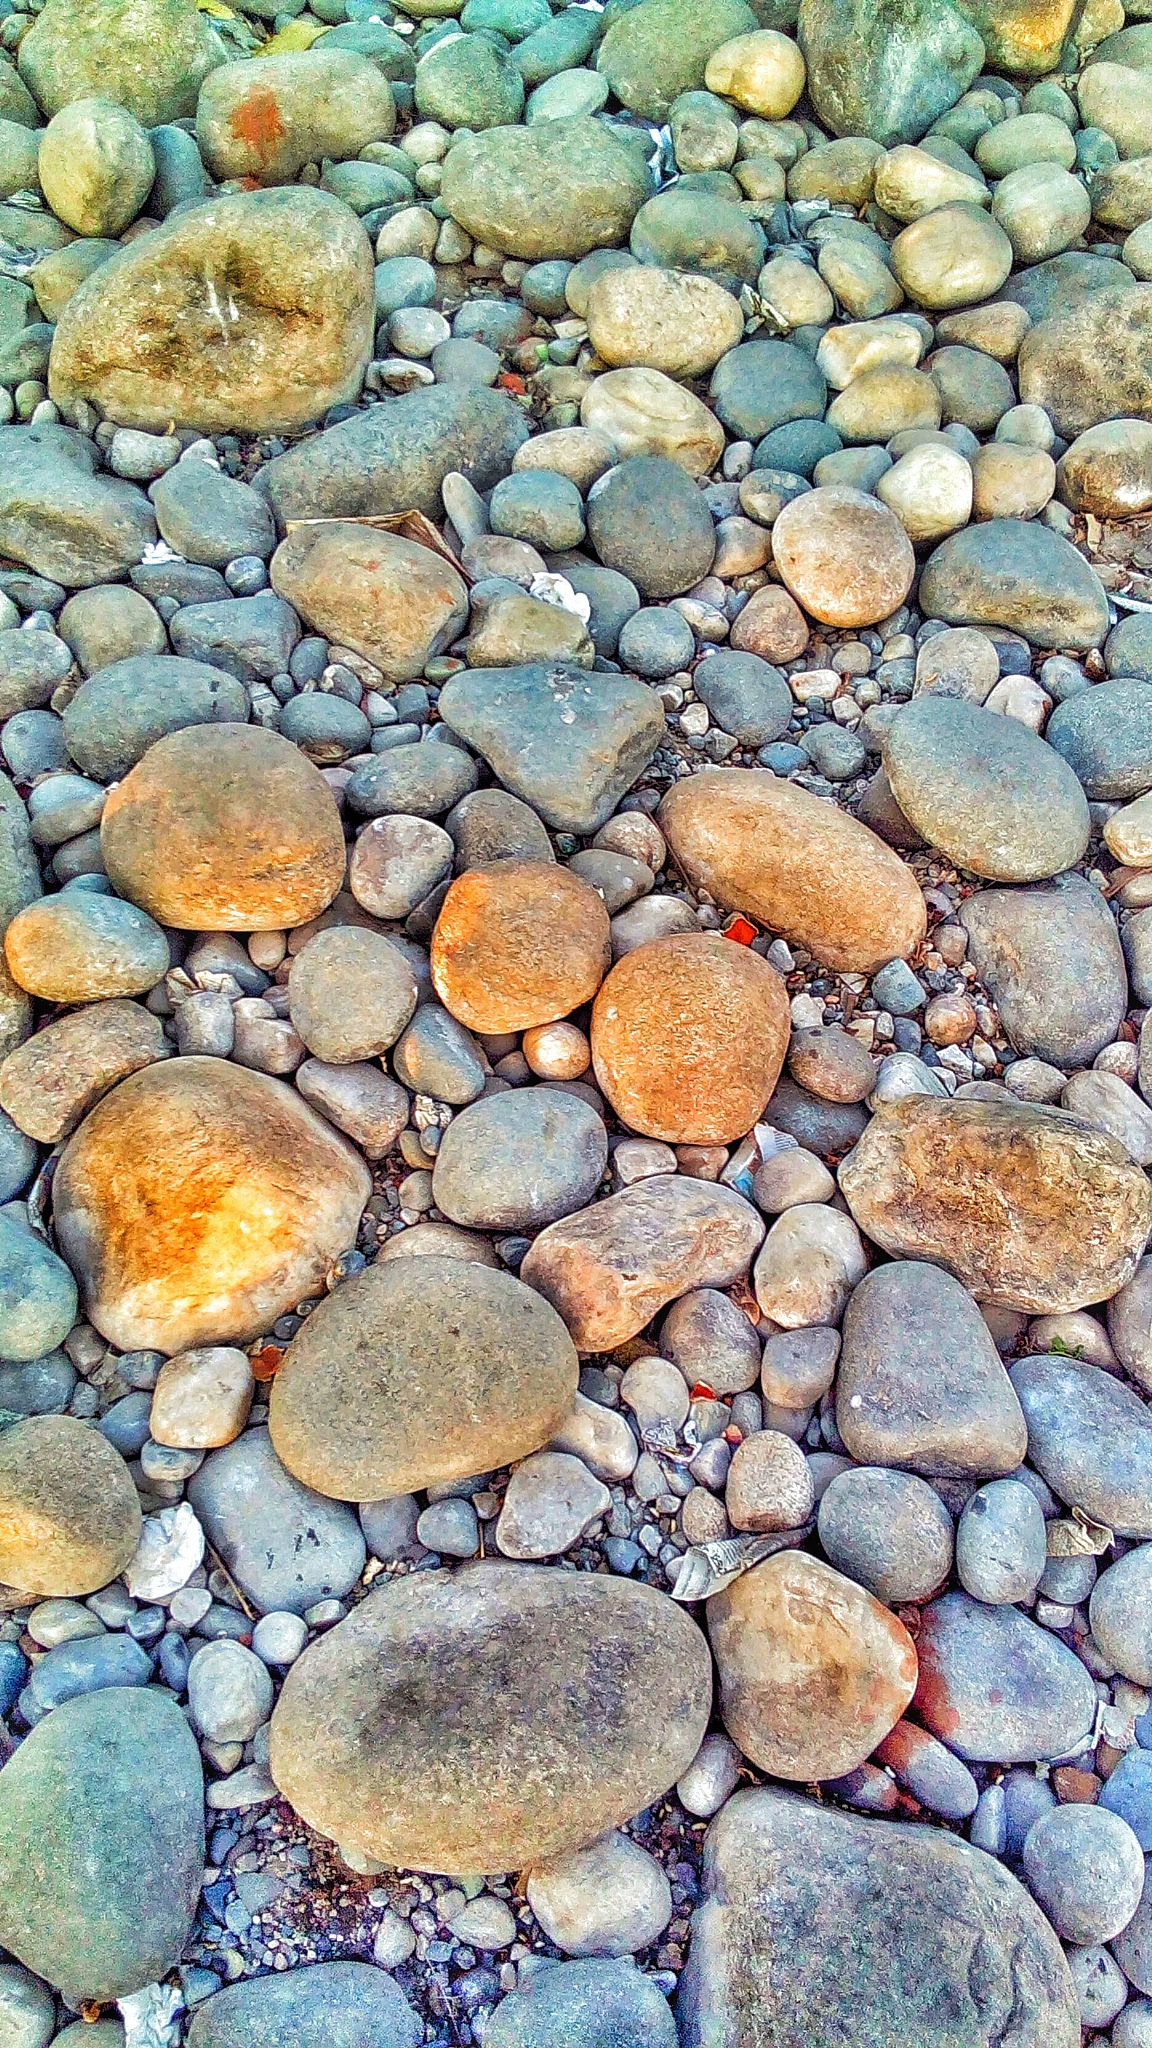 the pile of rocks  by Rajat Chakraborty